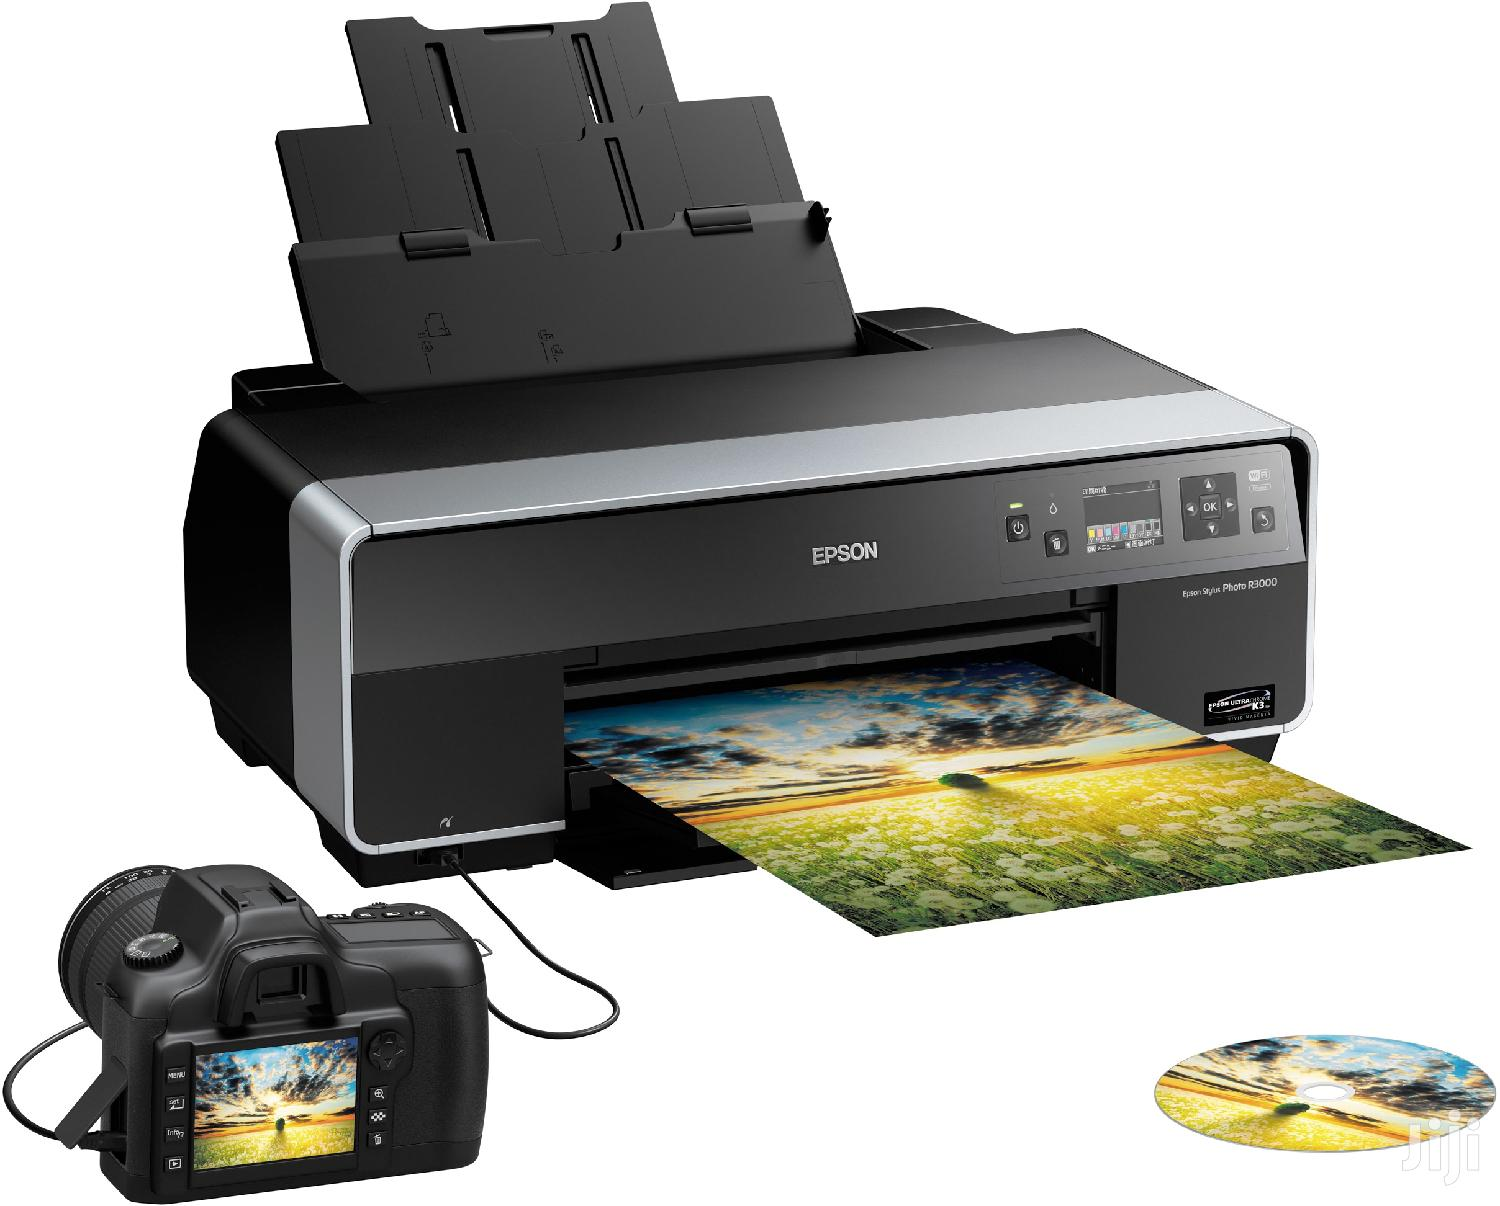 AA A0 EPSON Photo Graphic Design Printers With Ciss